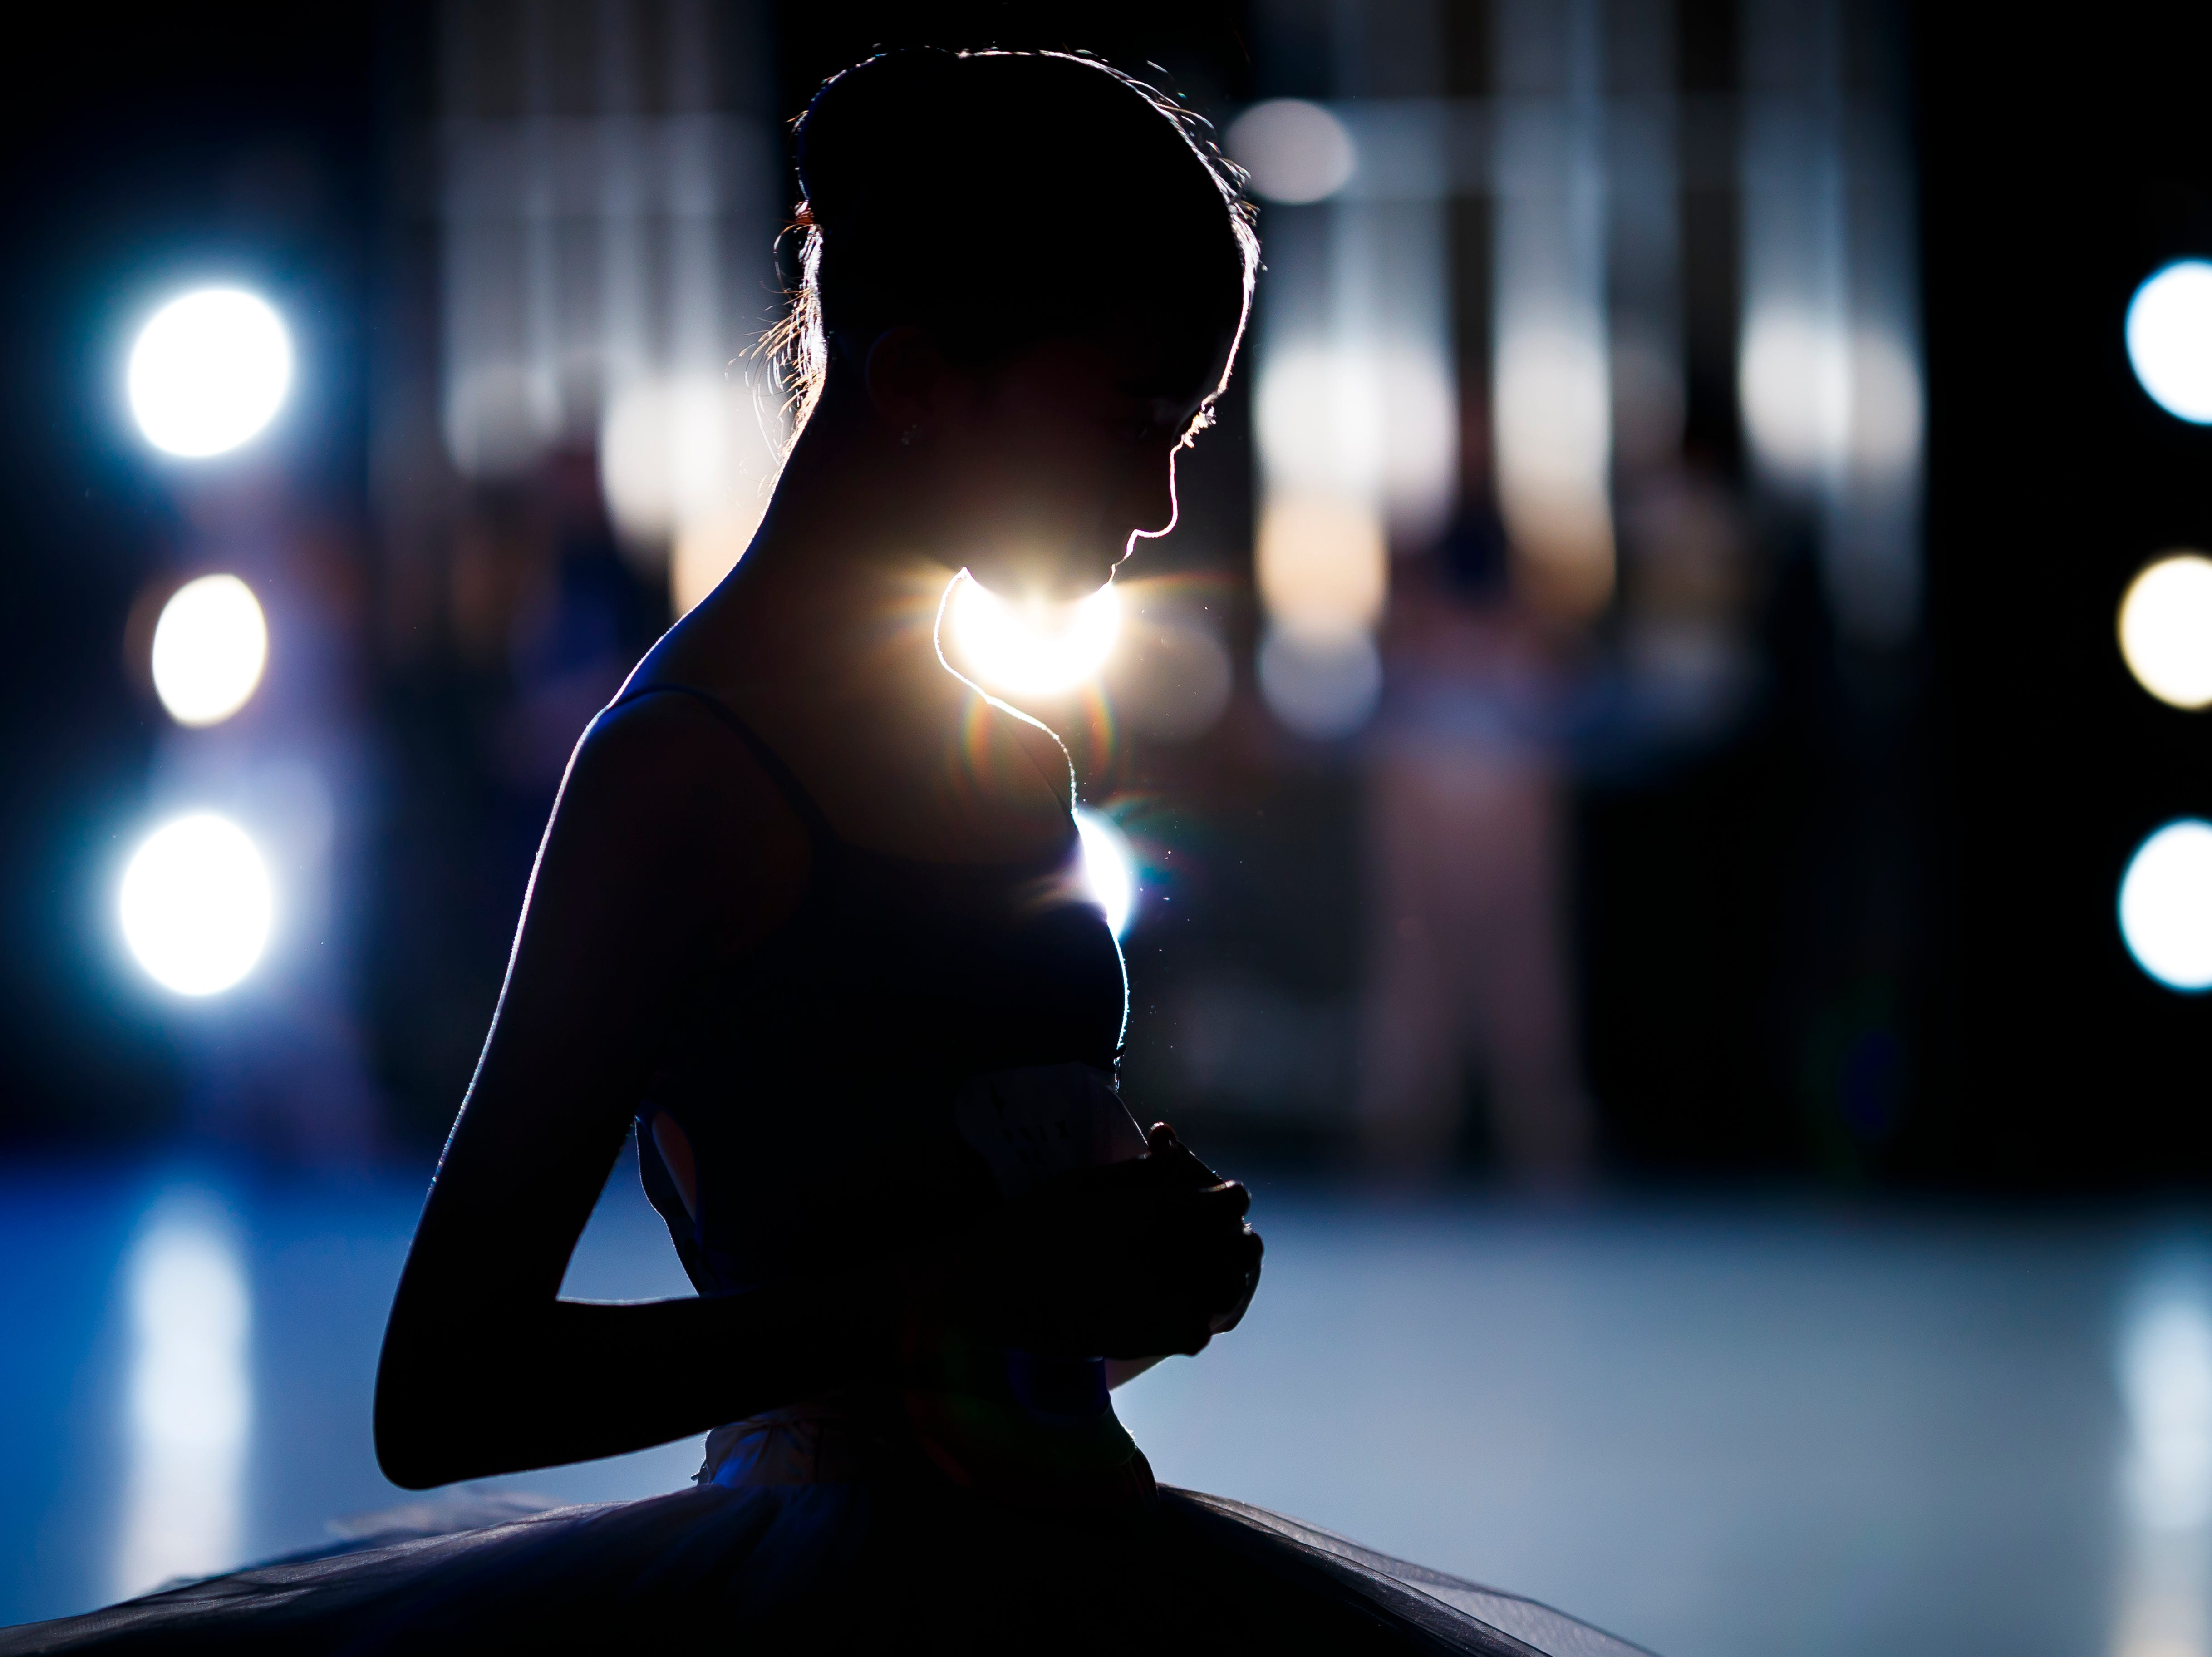 A dancer waits prior to stepping on stage during the first day of the 47th Prix de Lausanne in Lausanne, Switzerland, Monday, Feb. 4, 2019. Launched in 1973, the Prix de Lausanne is an international dance competition for young dancers aged 15 to 18. Closing the six-day event, scholarships granting free tuition in a world-renowned dance school or dance company will be award to the best dancers out of 74 participants this year.